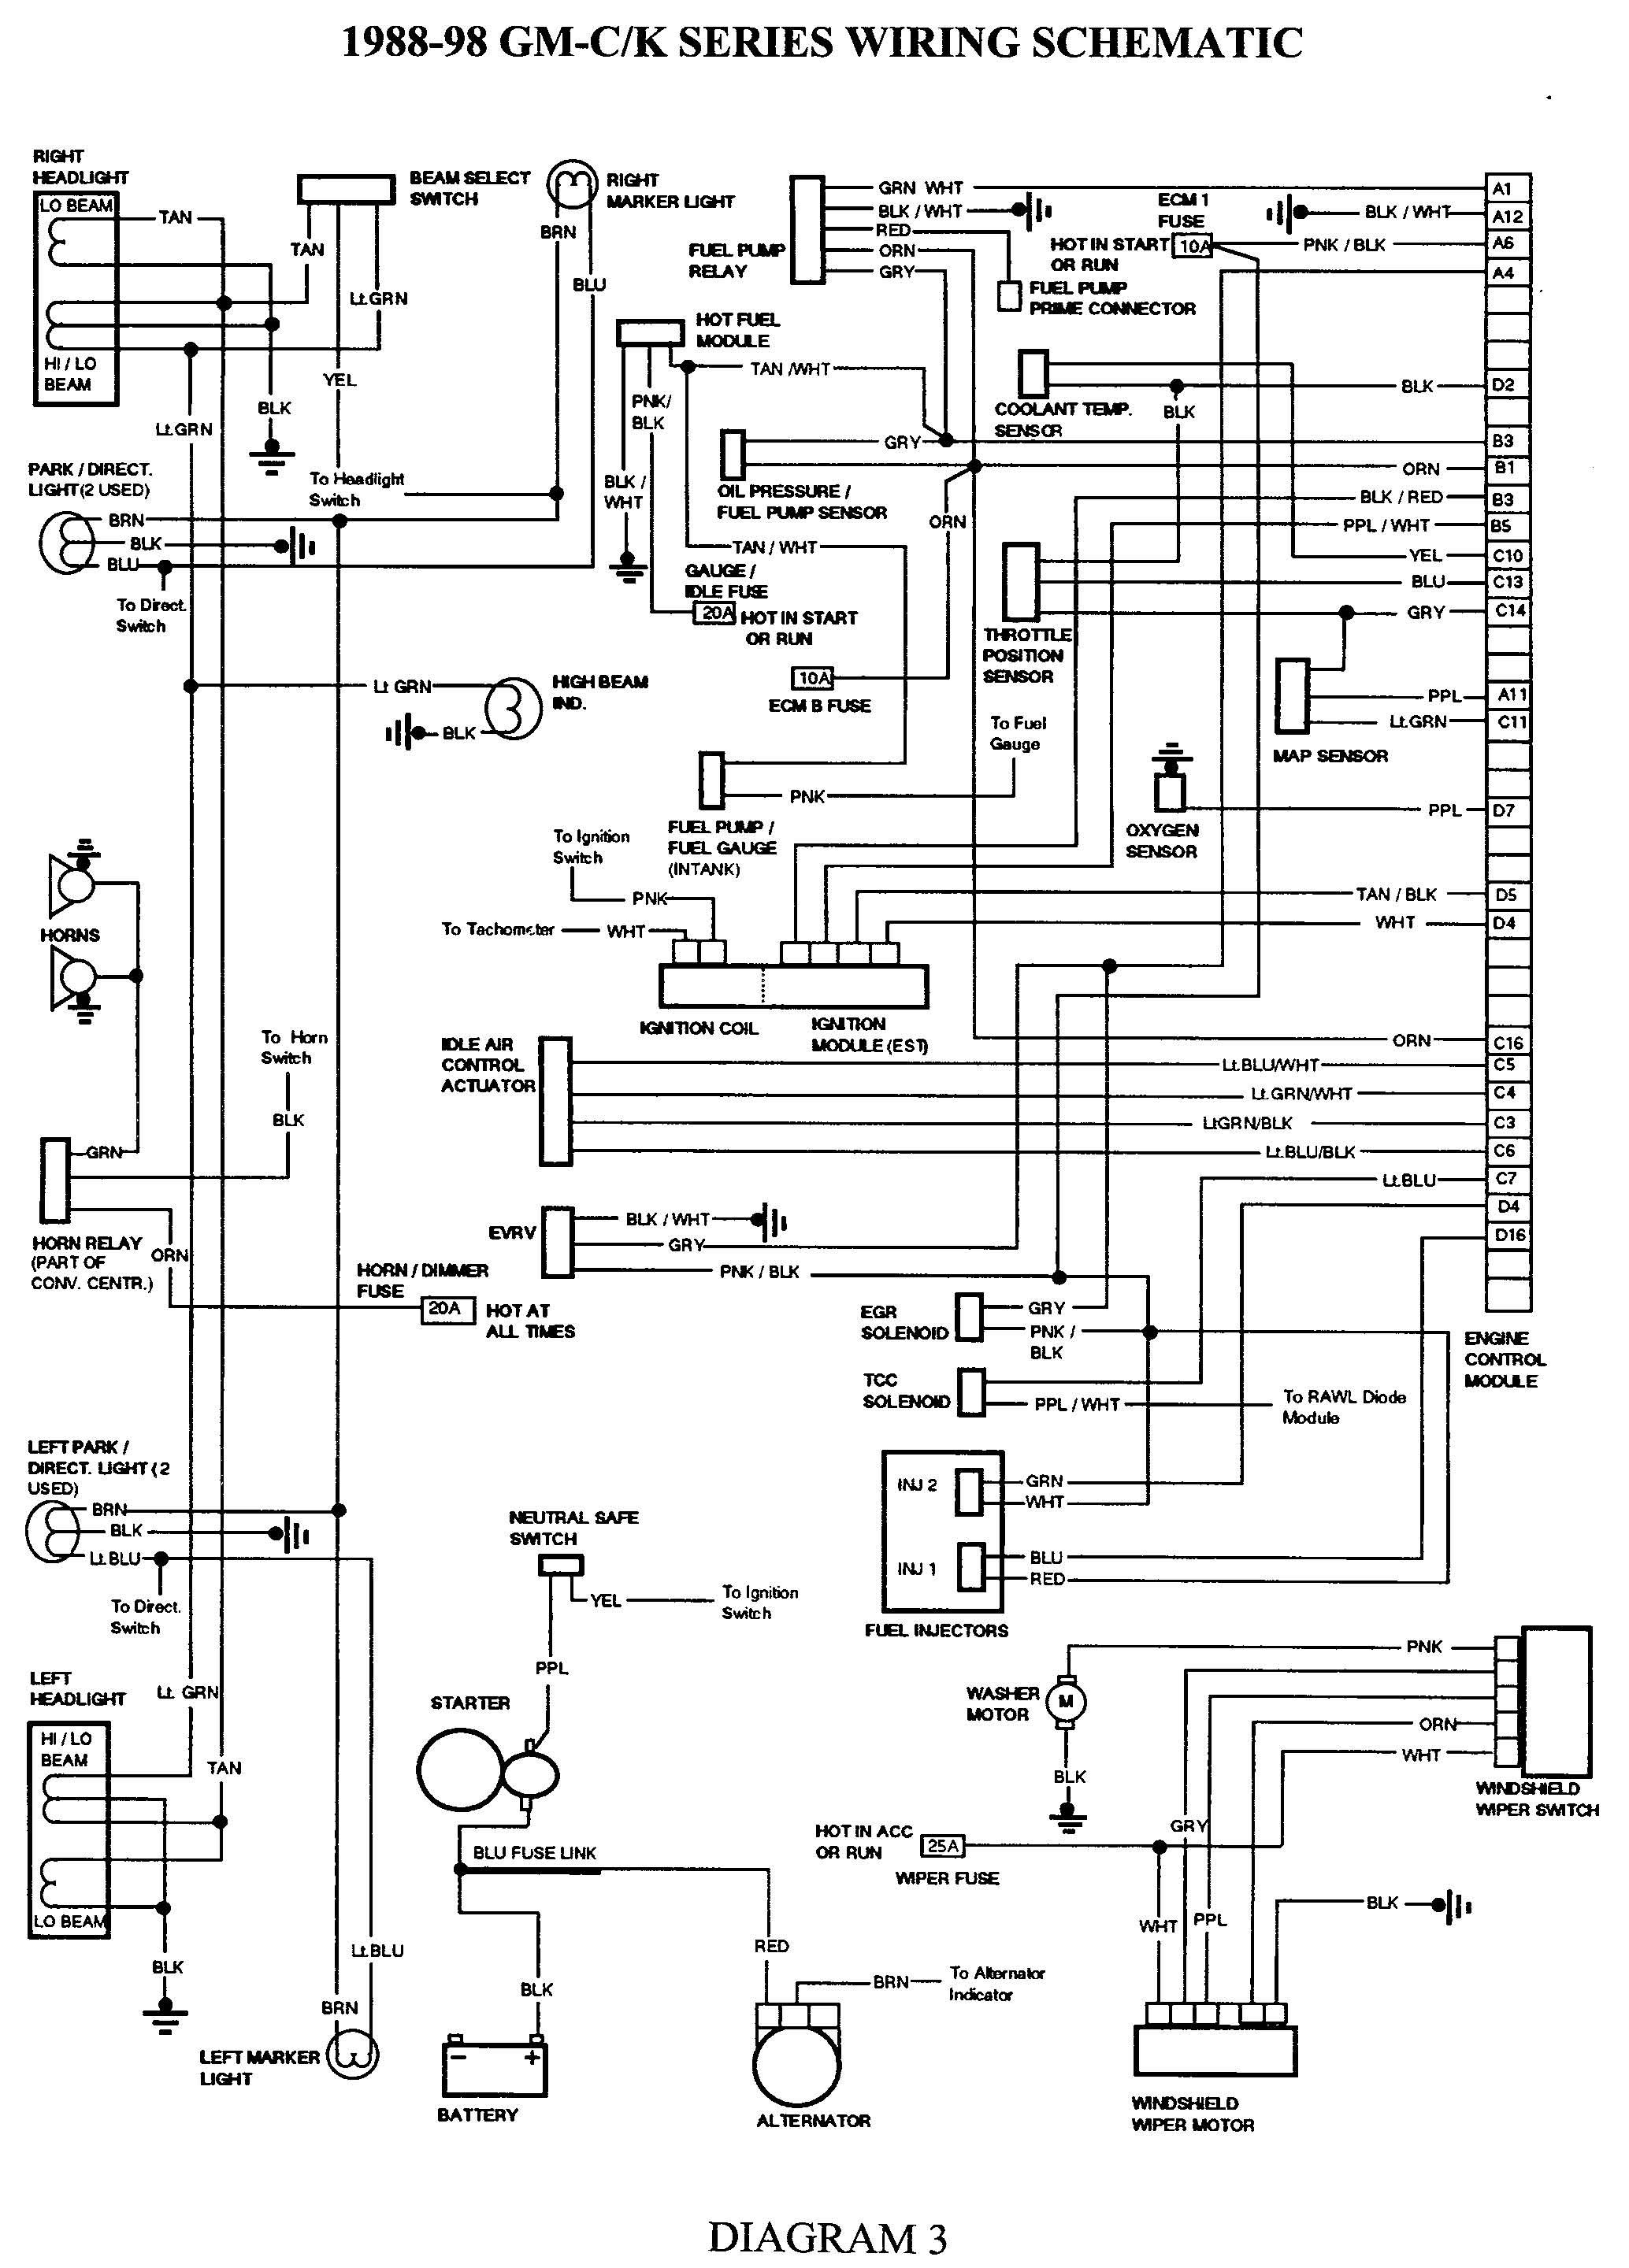 1989 chevy truck k 2500 truck 4wd v8 350 5 7l fuel pump relay 1989 chevy truck fuel pump wiring diagram 1989 chevy truck wiring diagram [ 2068 x 2880 Pixel ]